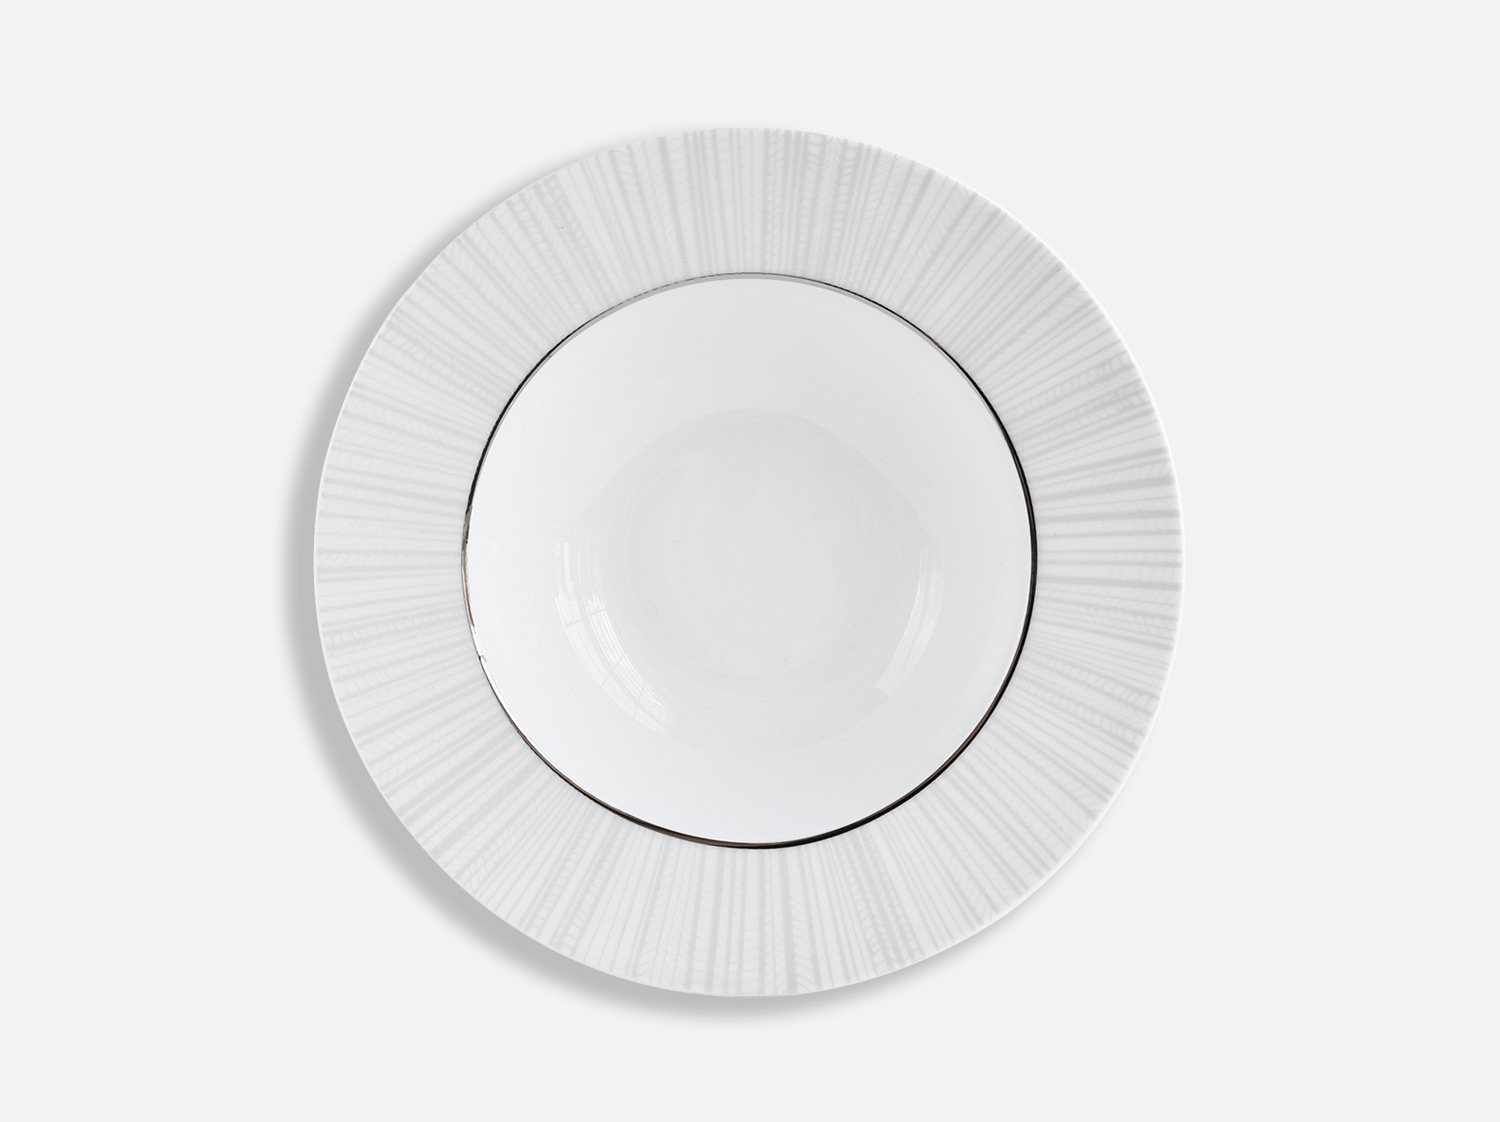 Assiette creuse à aile en porcelaine de la collection Silva Bernardaud